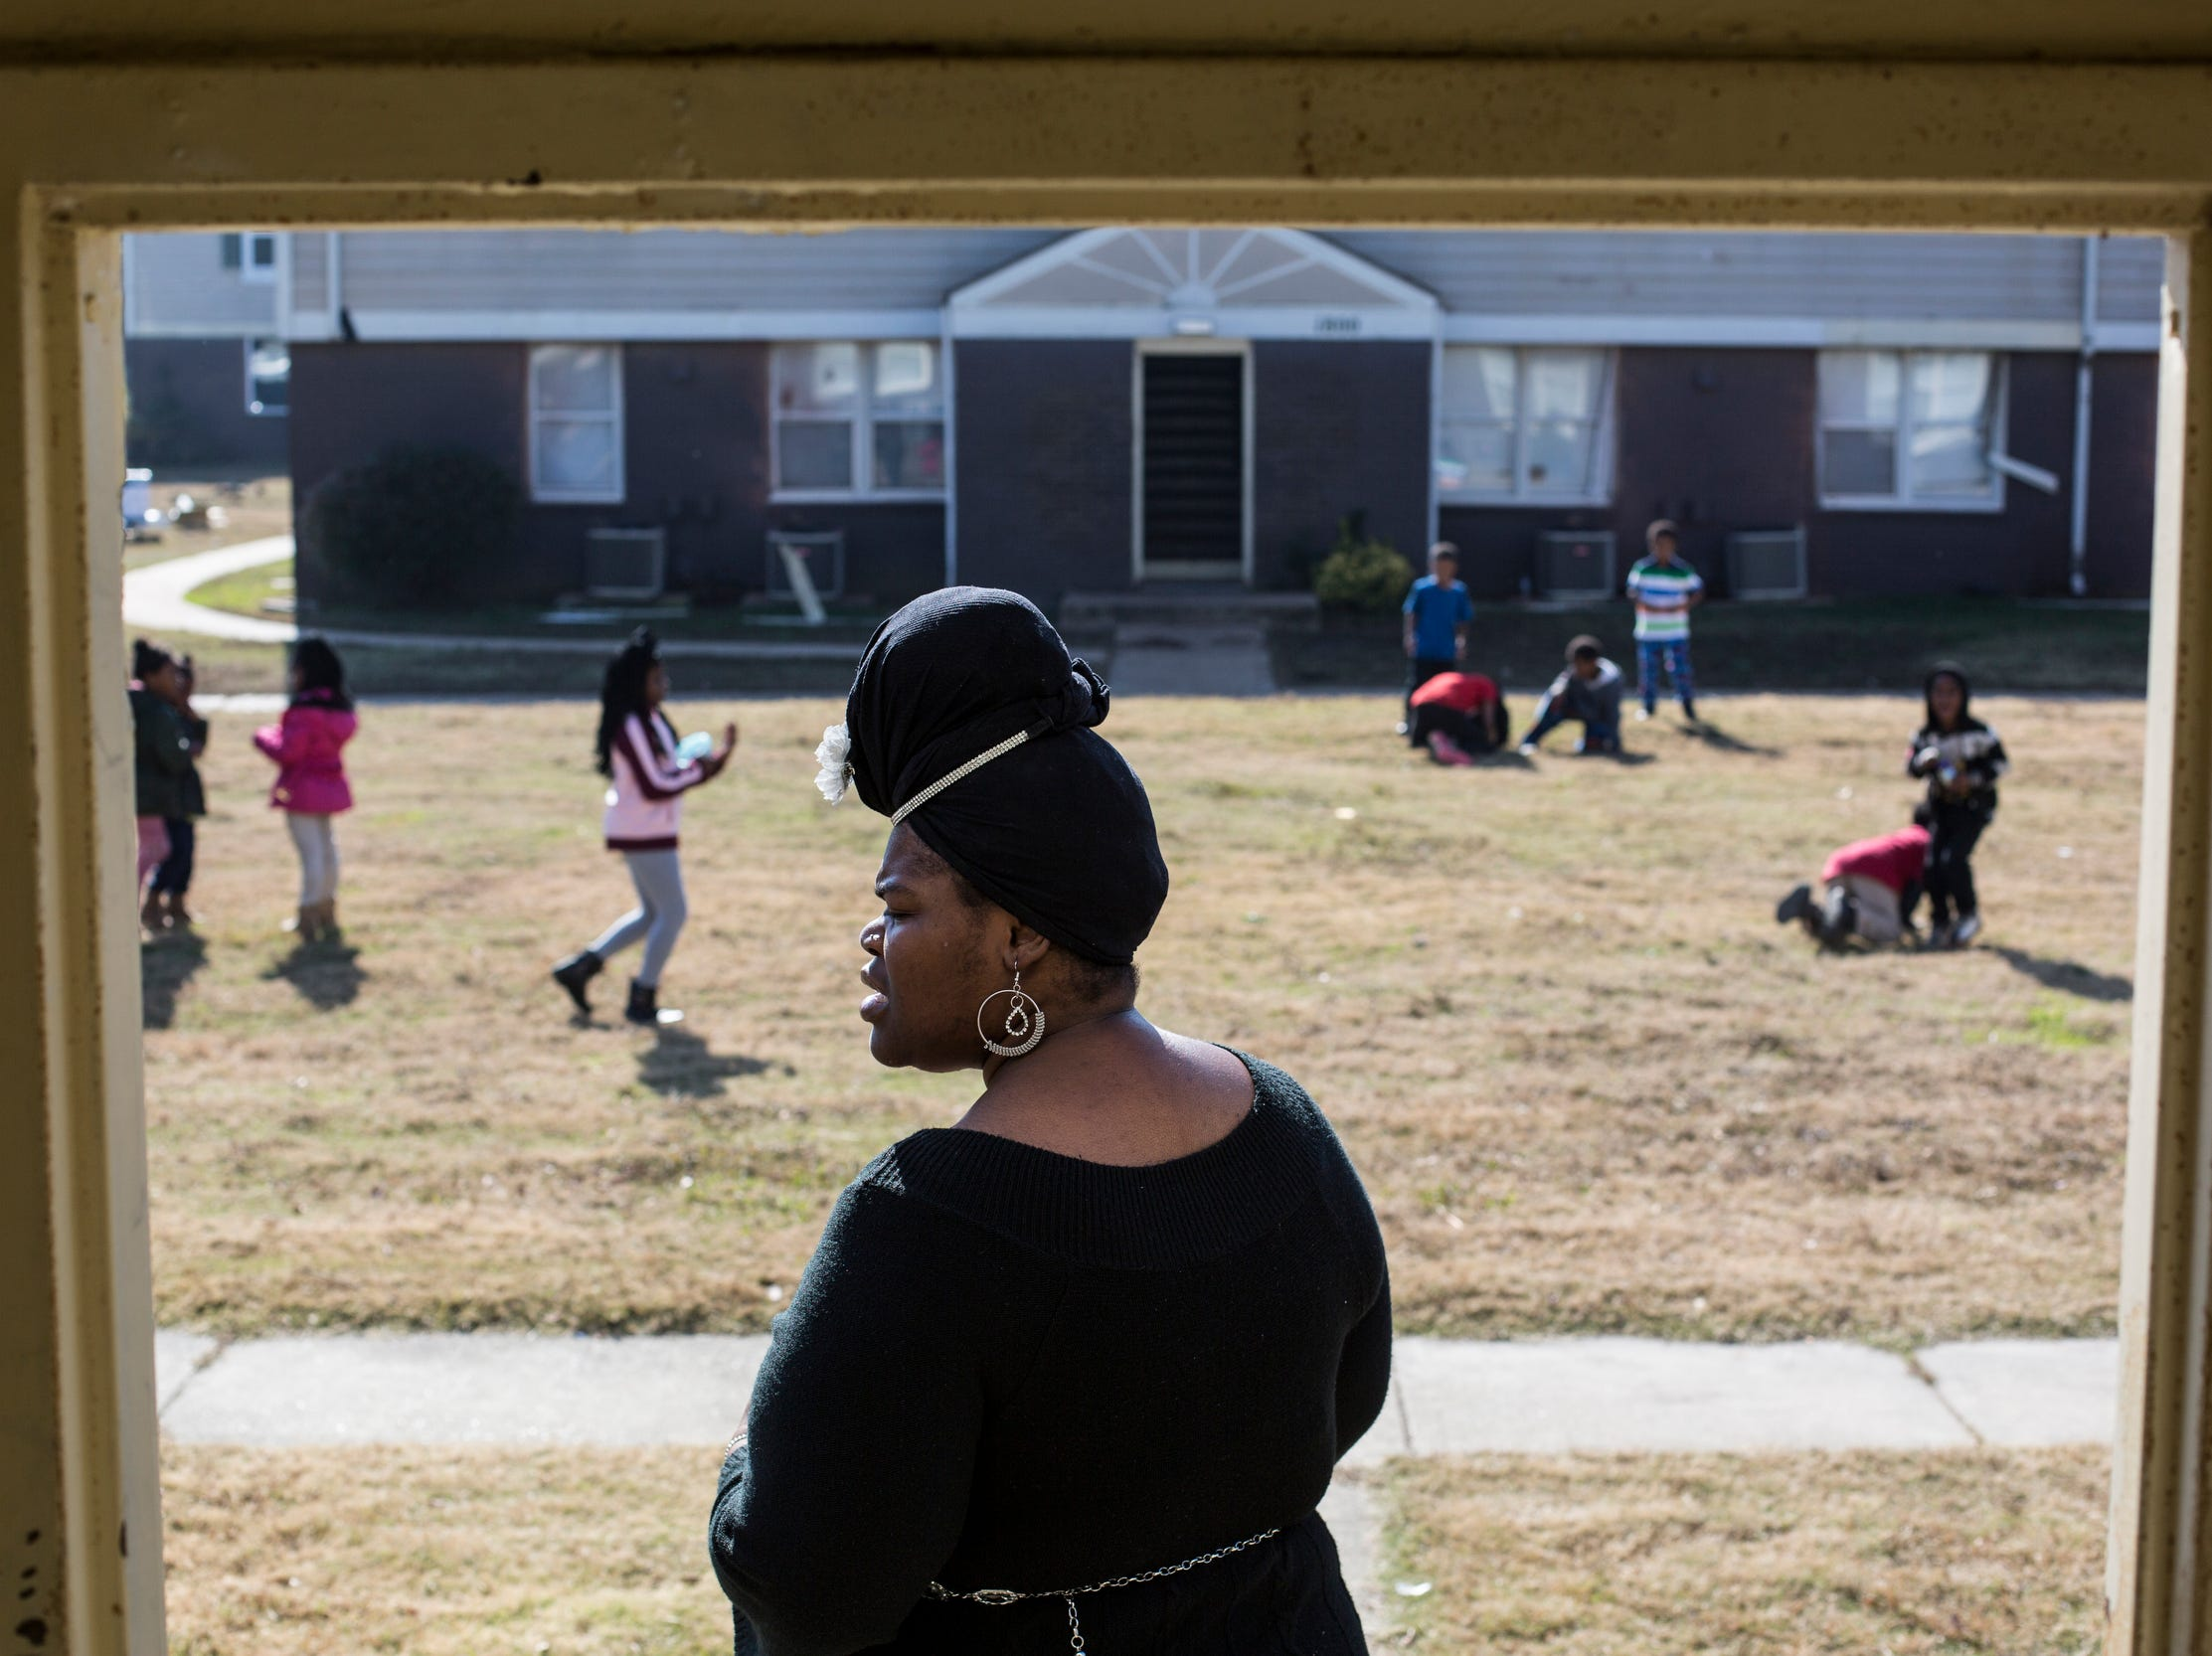 November 25 2018 - Shannon Washington spent the morning walking around her apartment complex, Pendleton Place Apartments in Orange Mound, talking with other residents about their concerns with the apartments. Residents of the apartment complex have concerns about broken heating, rodent infestations, gas leaks and other necessary repairs.